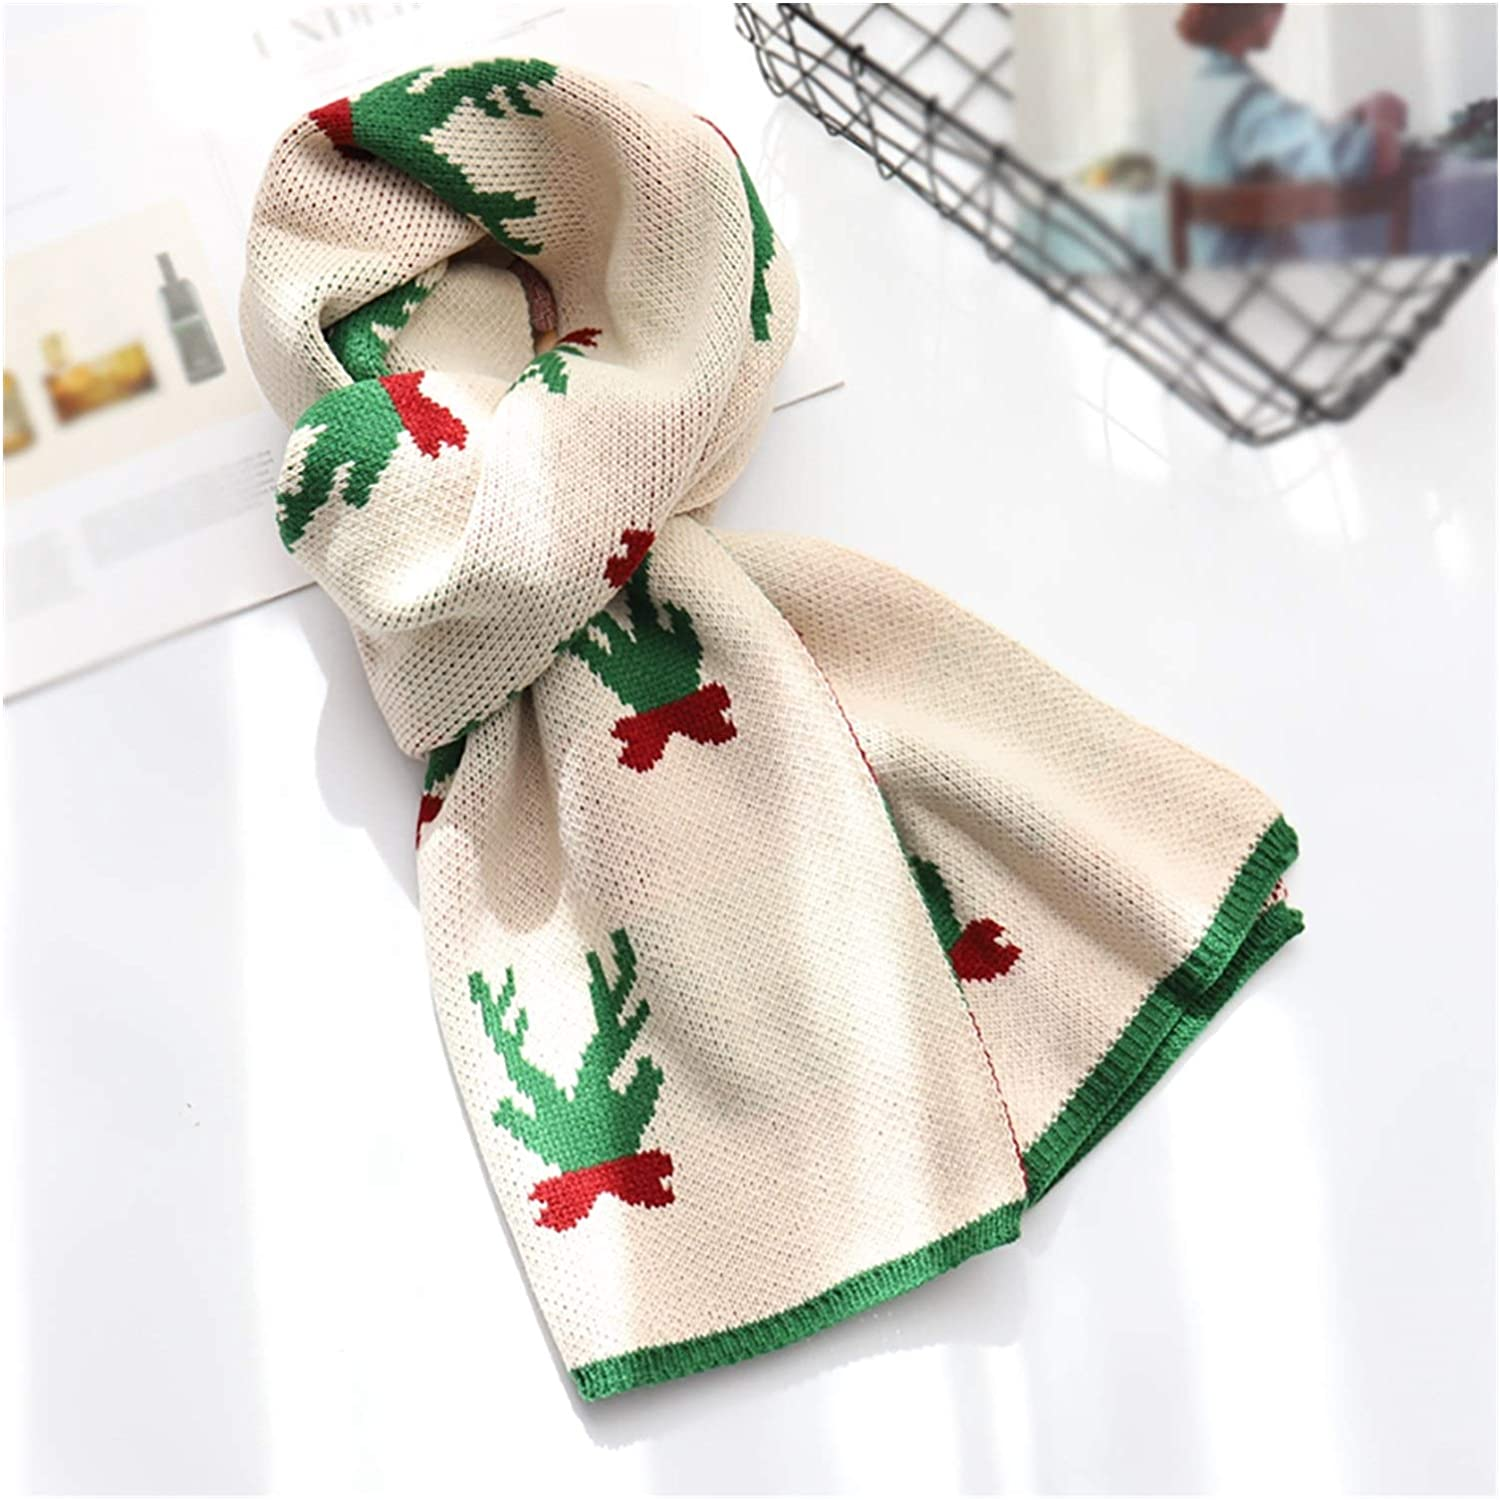 Max 52% OFF Winter Charlotte Mall Knit Scarf Women Men Scarve Christmas Warm Reindeer